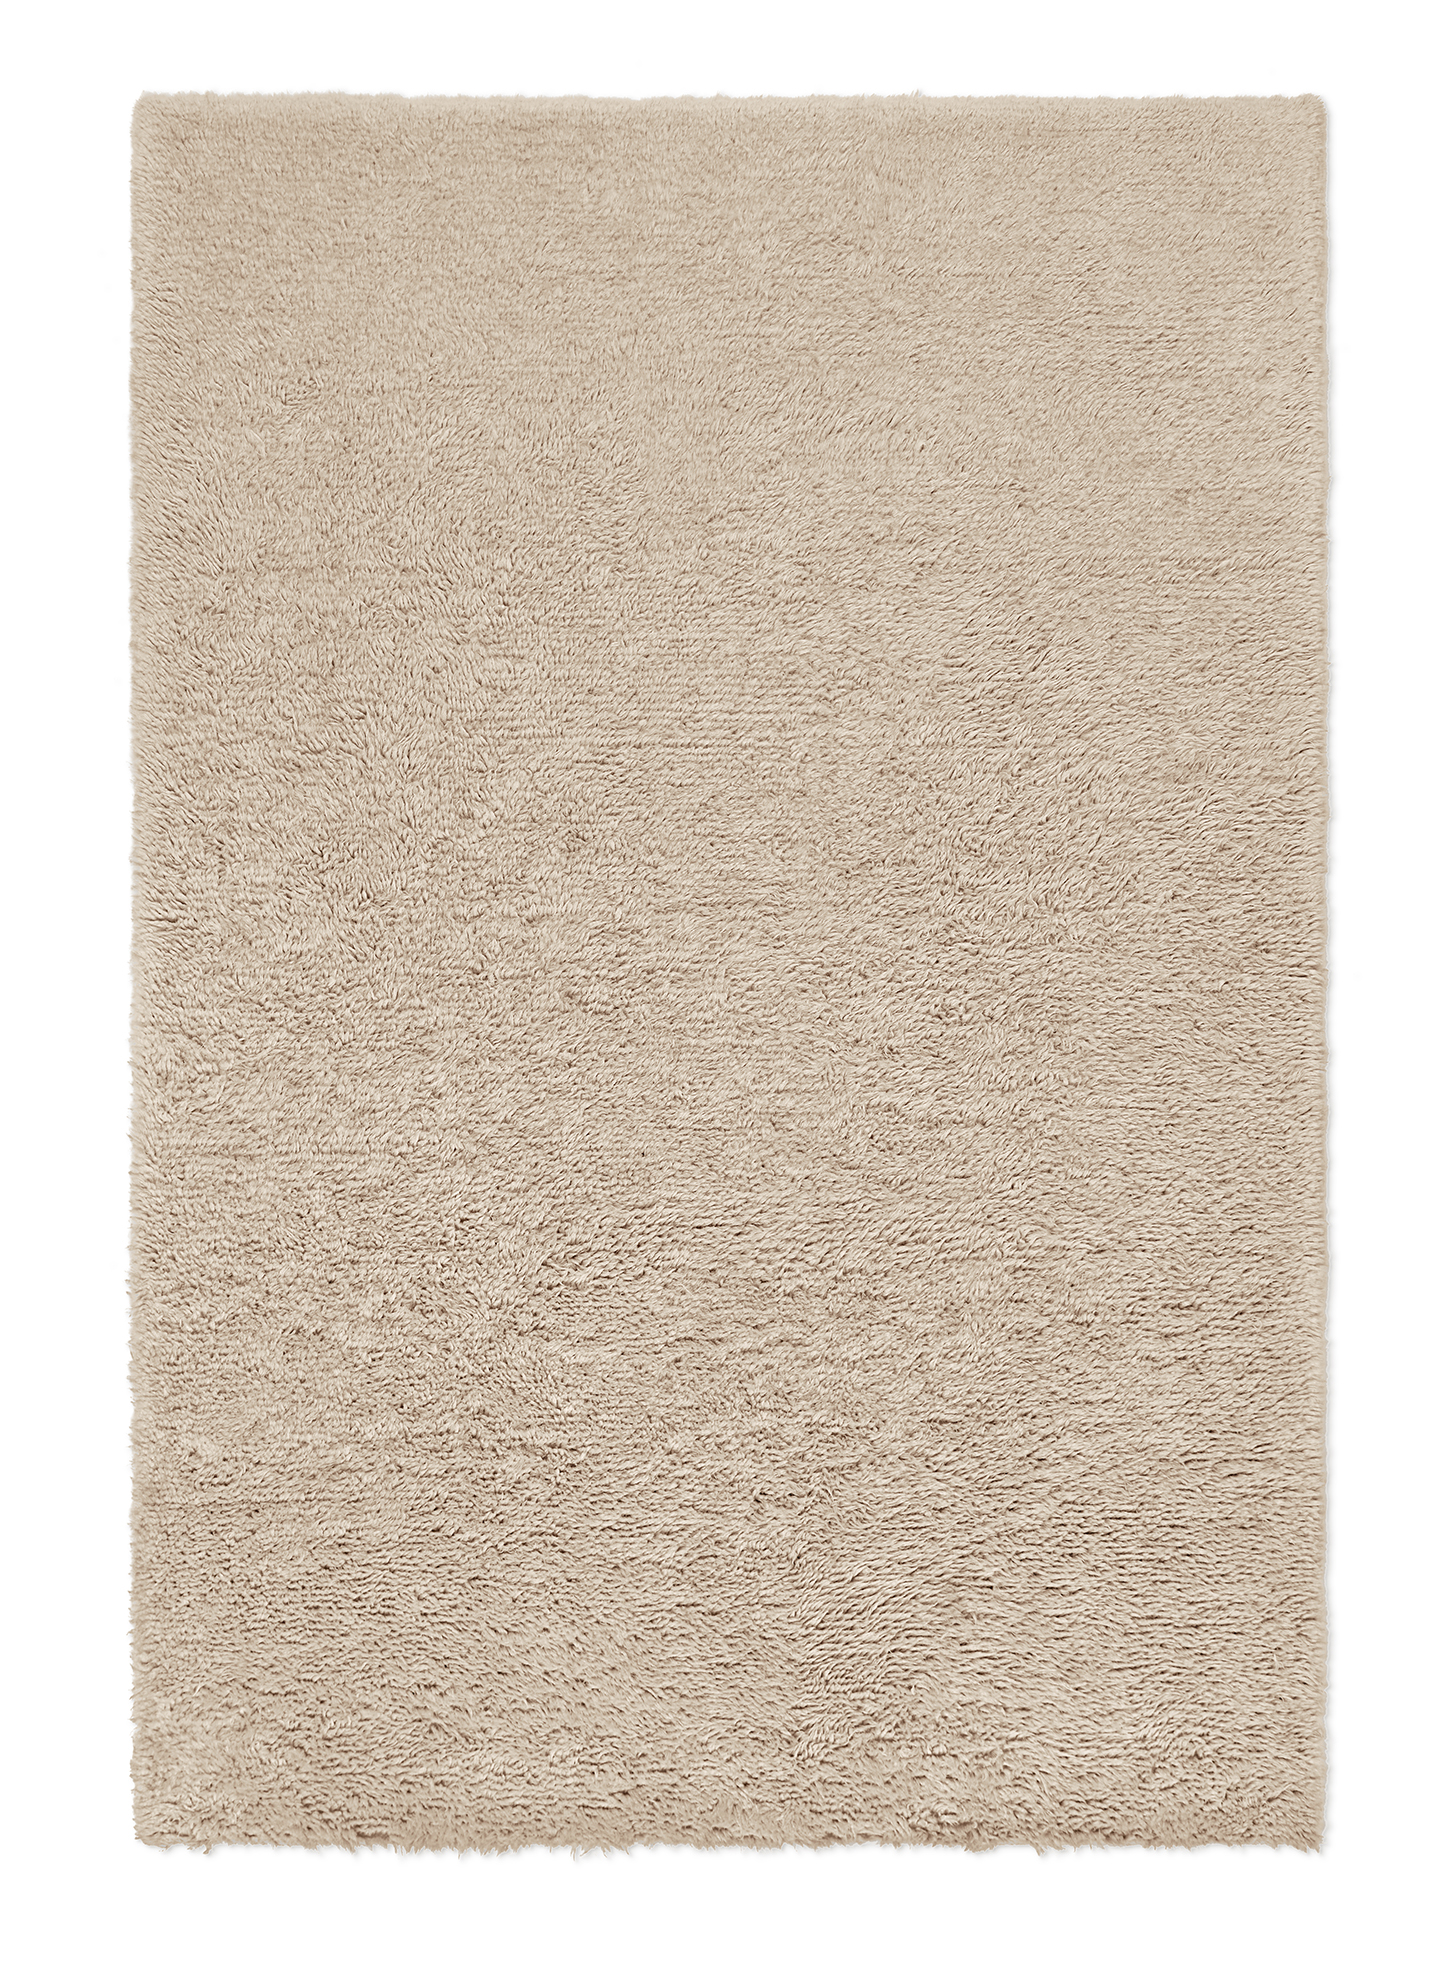 Campaign page. Product image of beige, shaggy wool rug Fields.